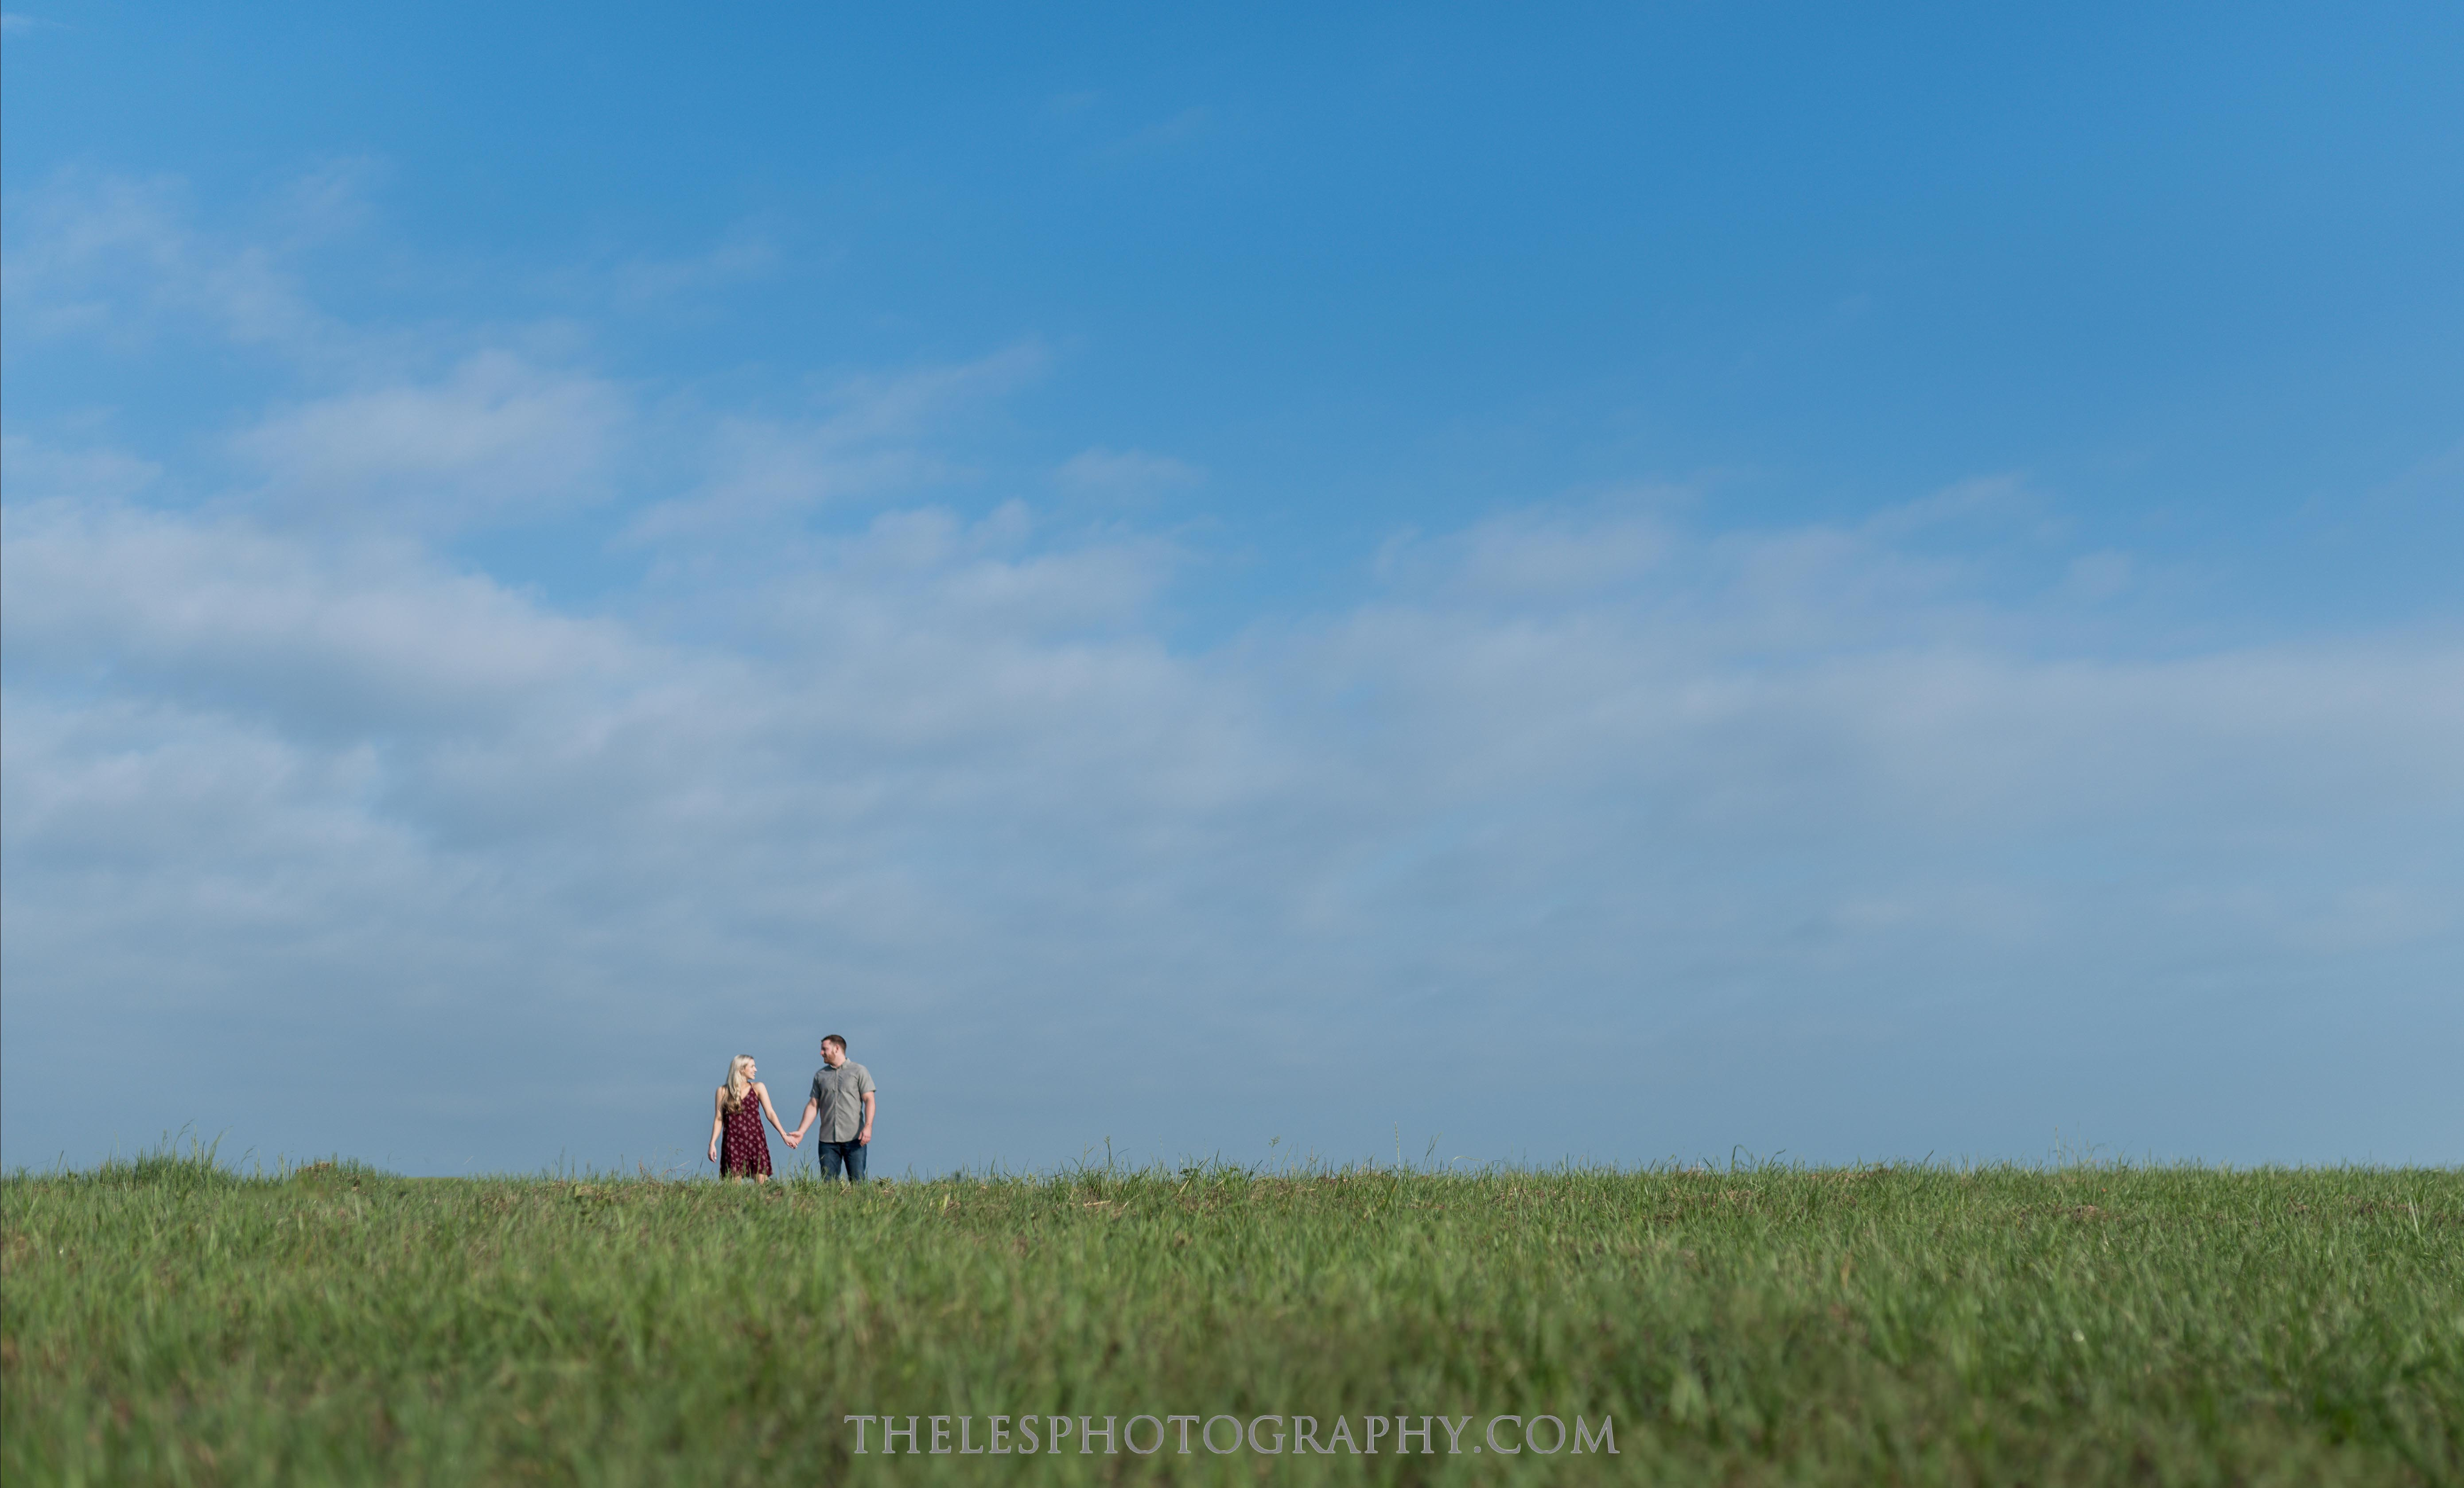 The Les Photography - Dallas Wedding Photographer - Trinity Groves Engagement - Haley and Noah 01